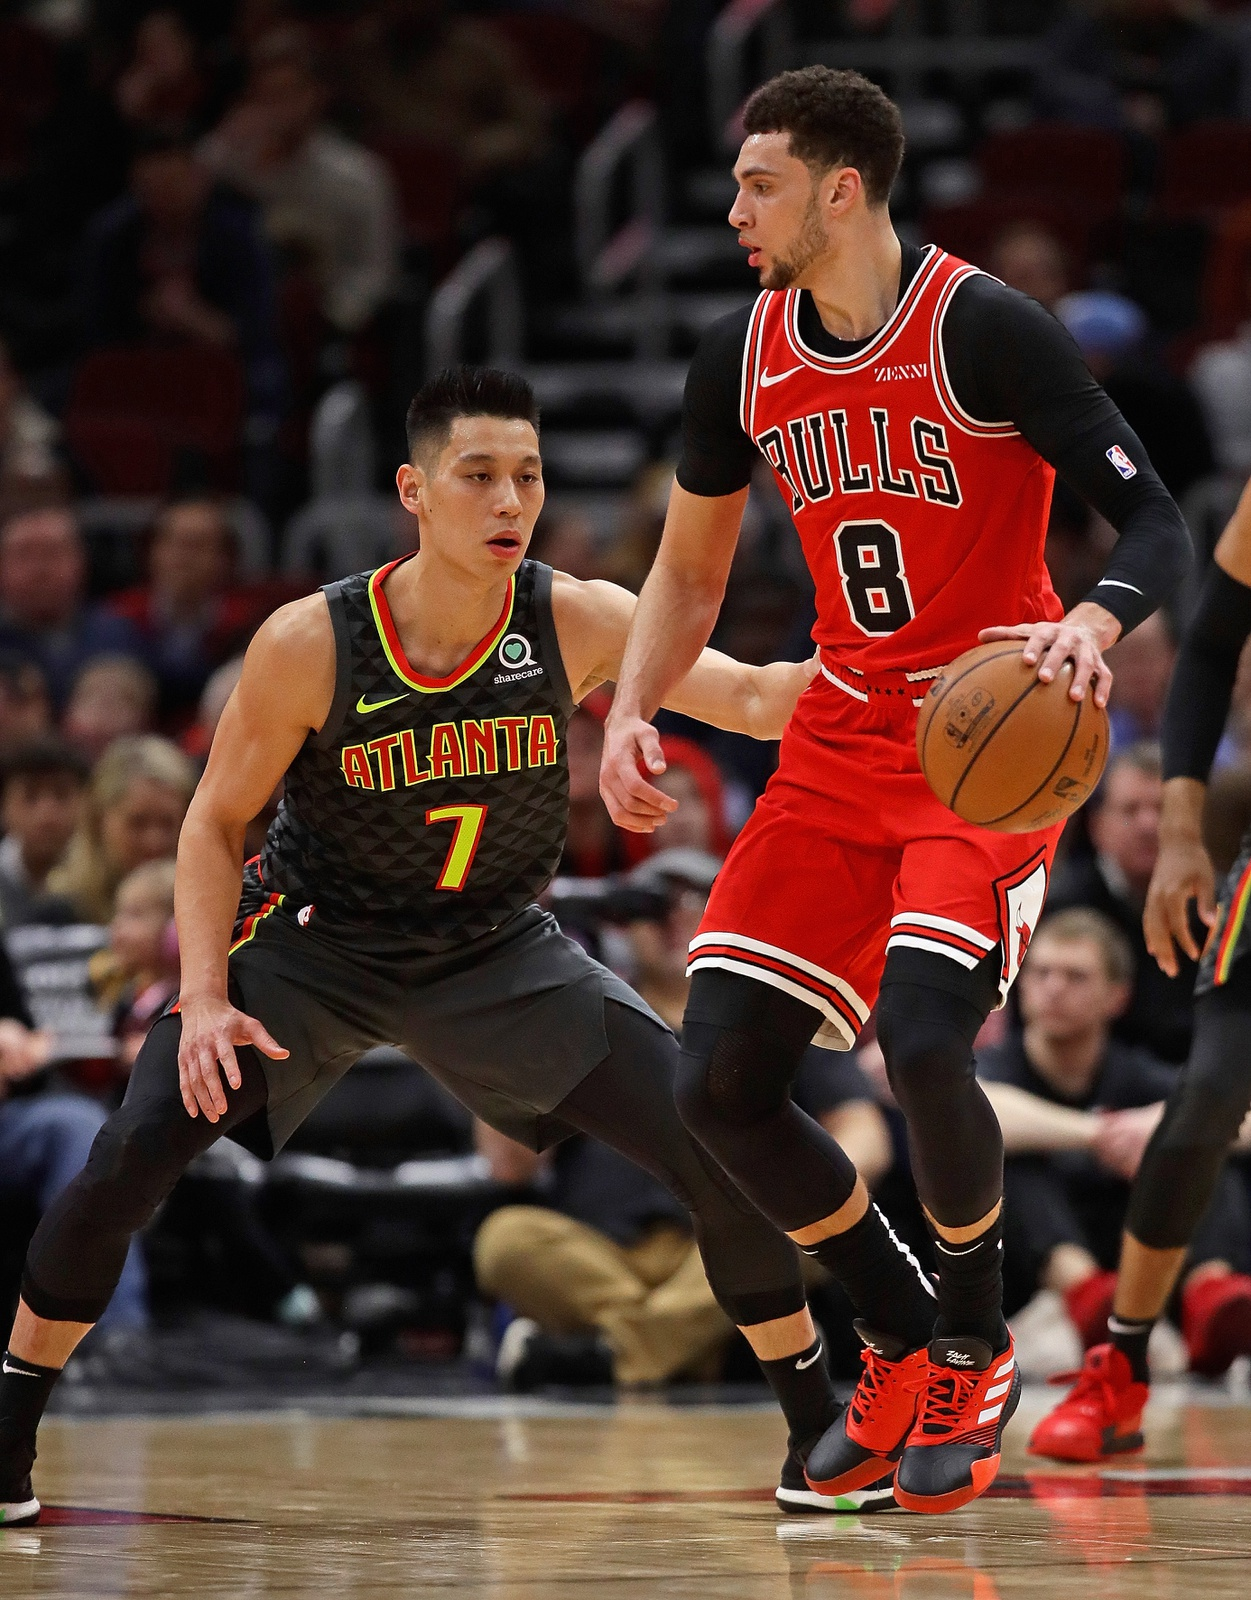 Zach LaVine #8 of the Chicago Bulls moves against Jeremy Lin #7 of the Atlanta Hawks at the United Center on January 23, 2019 in Chicago, Illinois